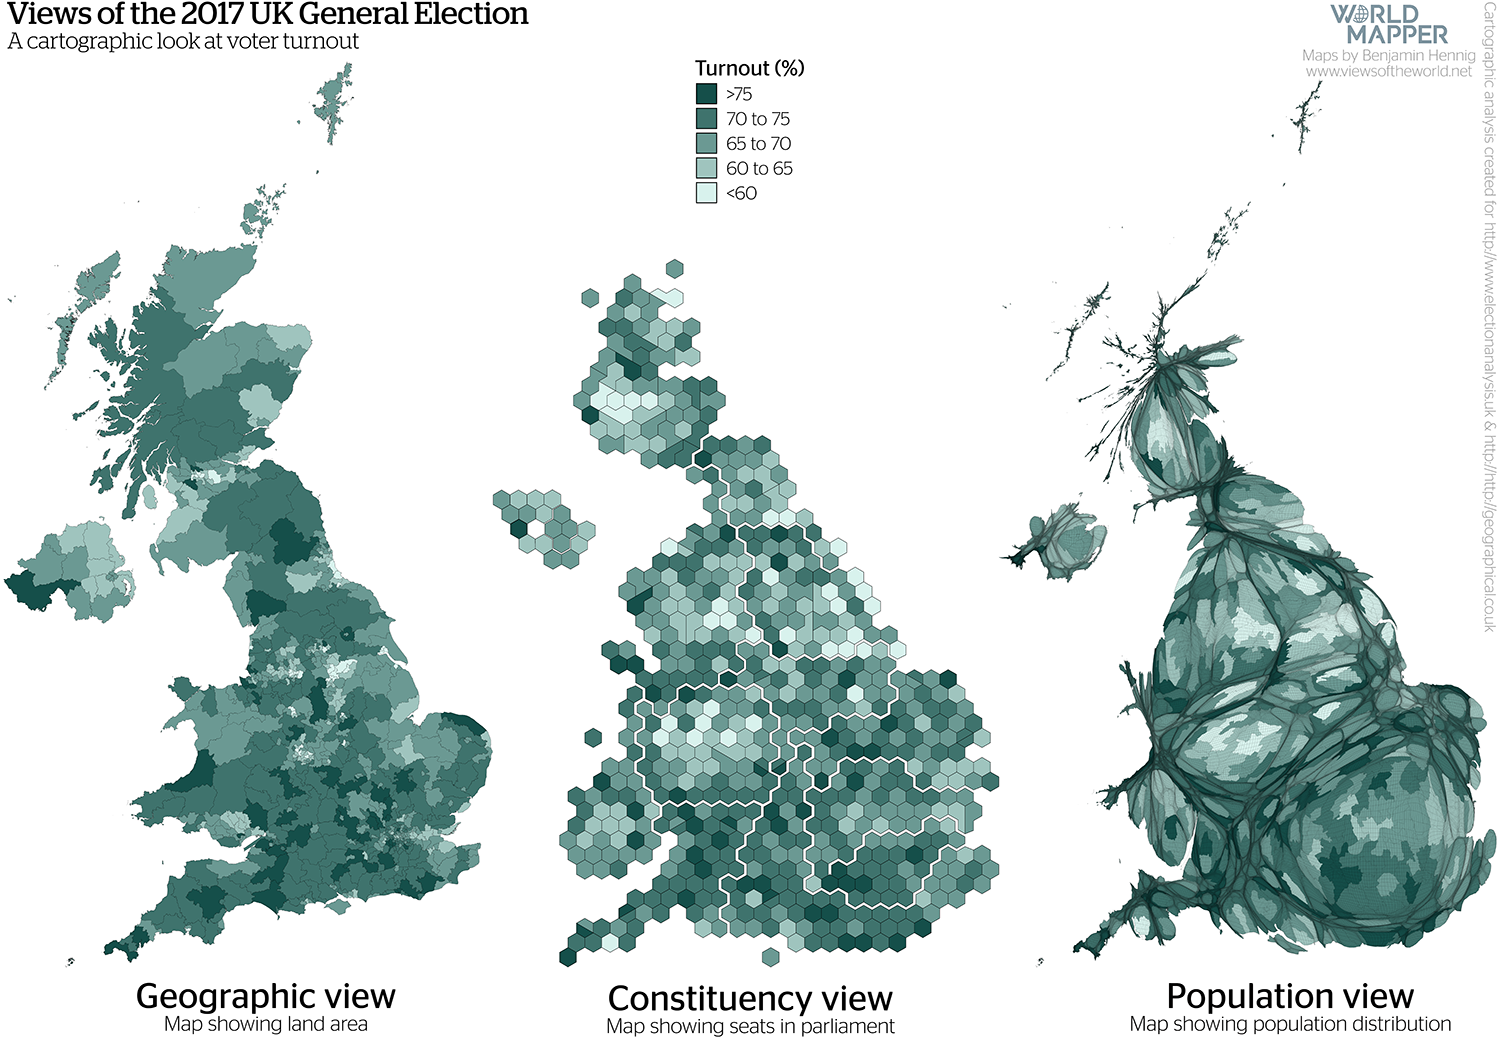 Political Map Of Great Britain.Political Landscapes Of The United Kingdom In 2017 Views Of The World